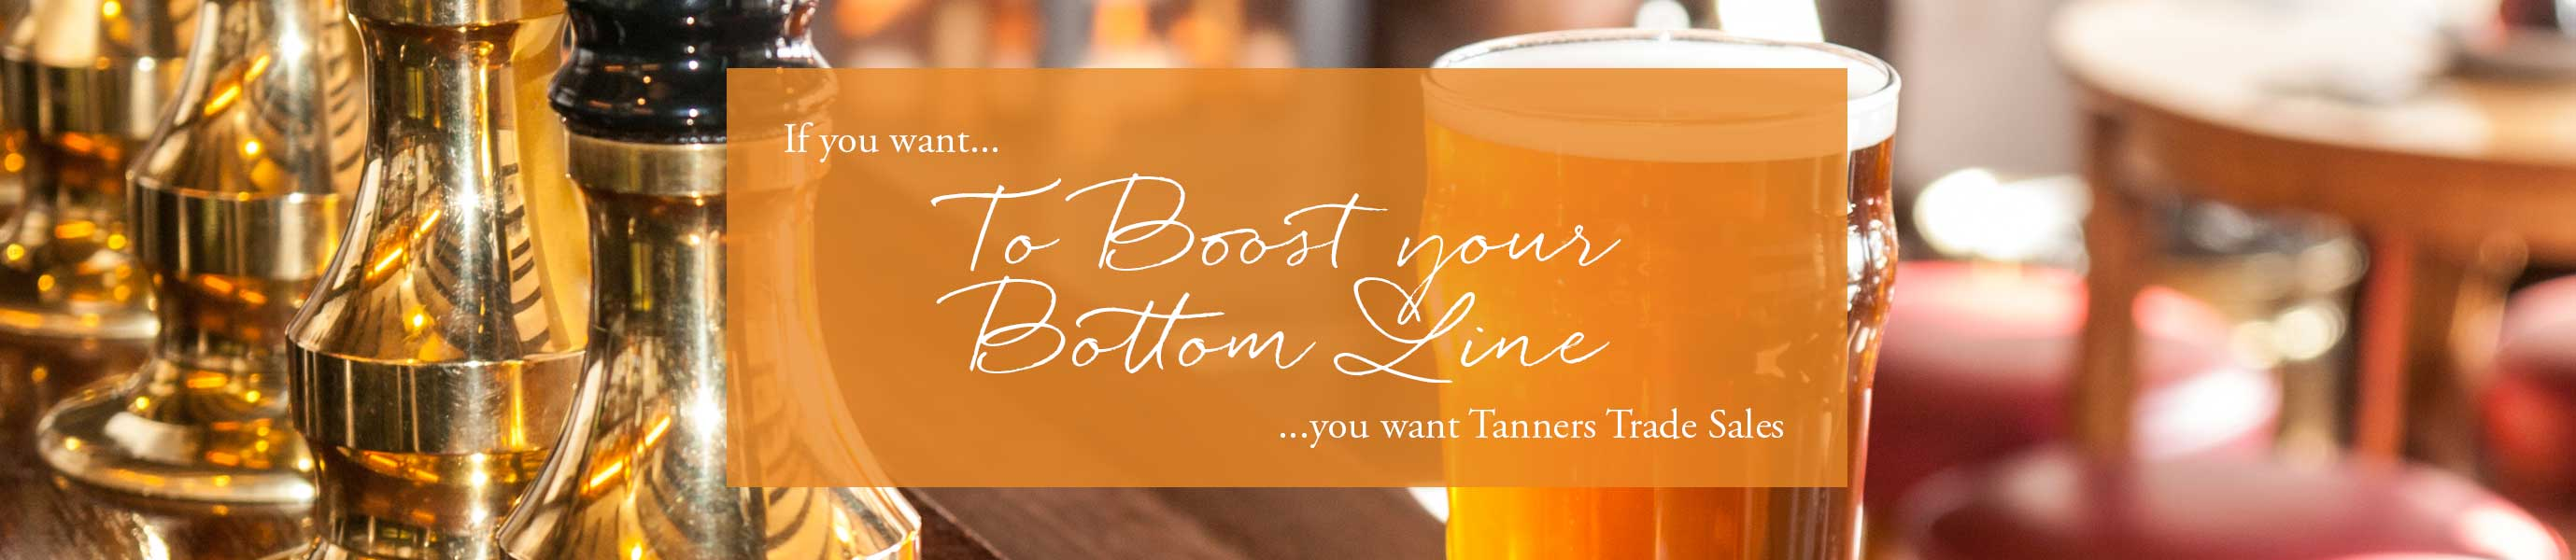 Boost your bottom line with Tanners Trade Sales